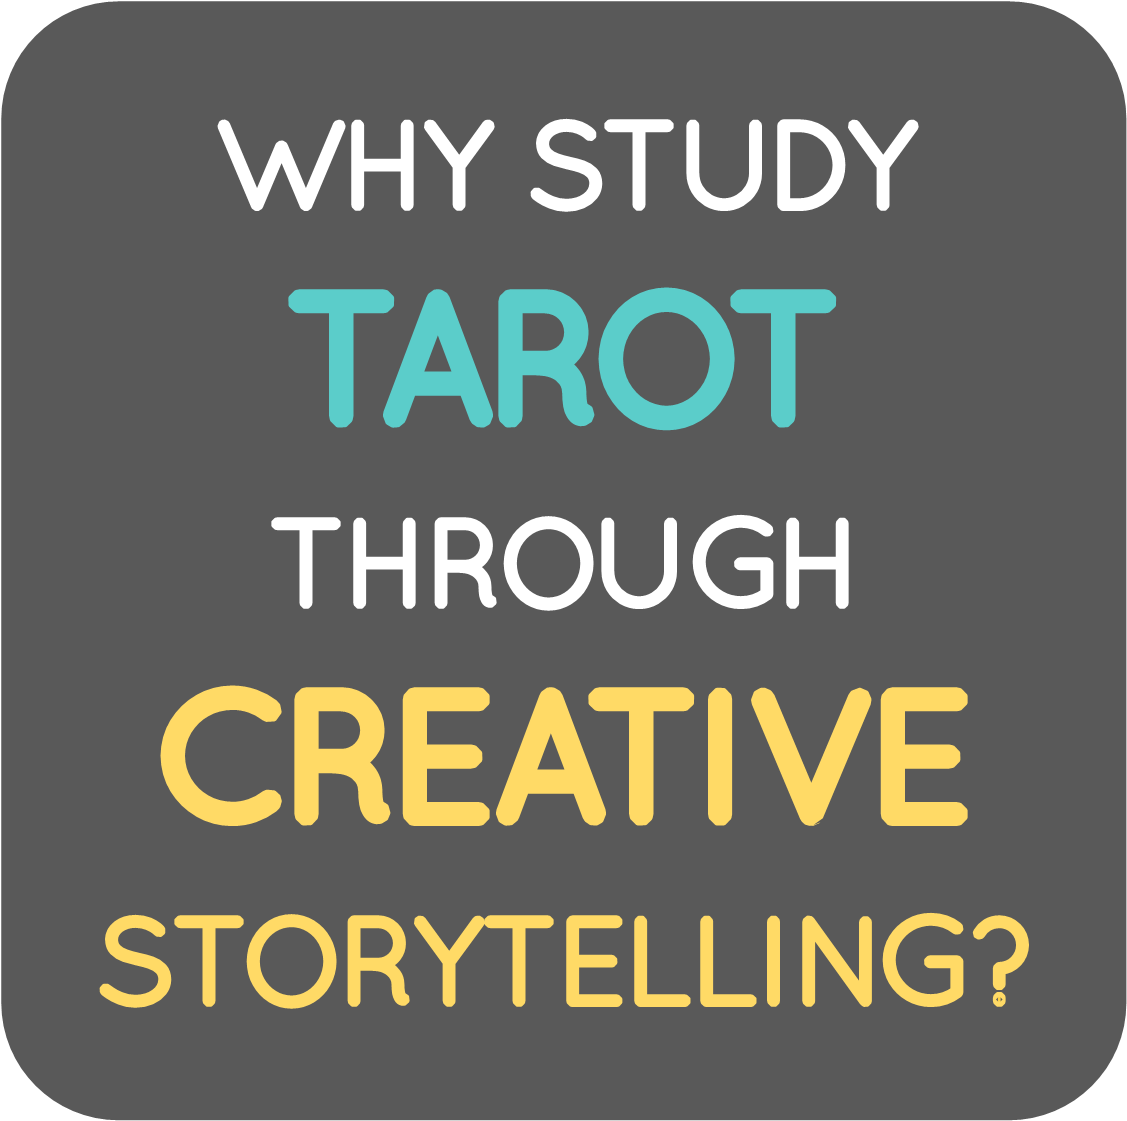 why study tarot through creative storytelling.png